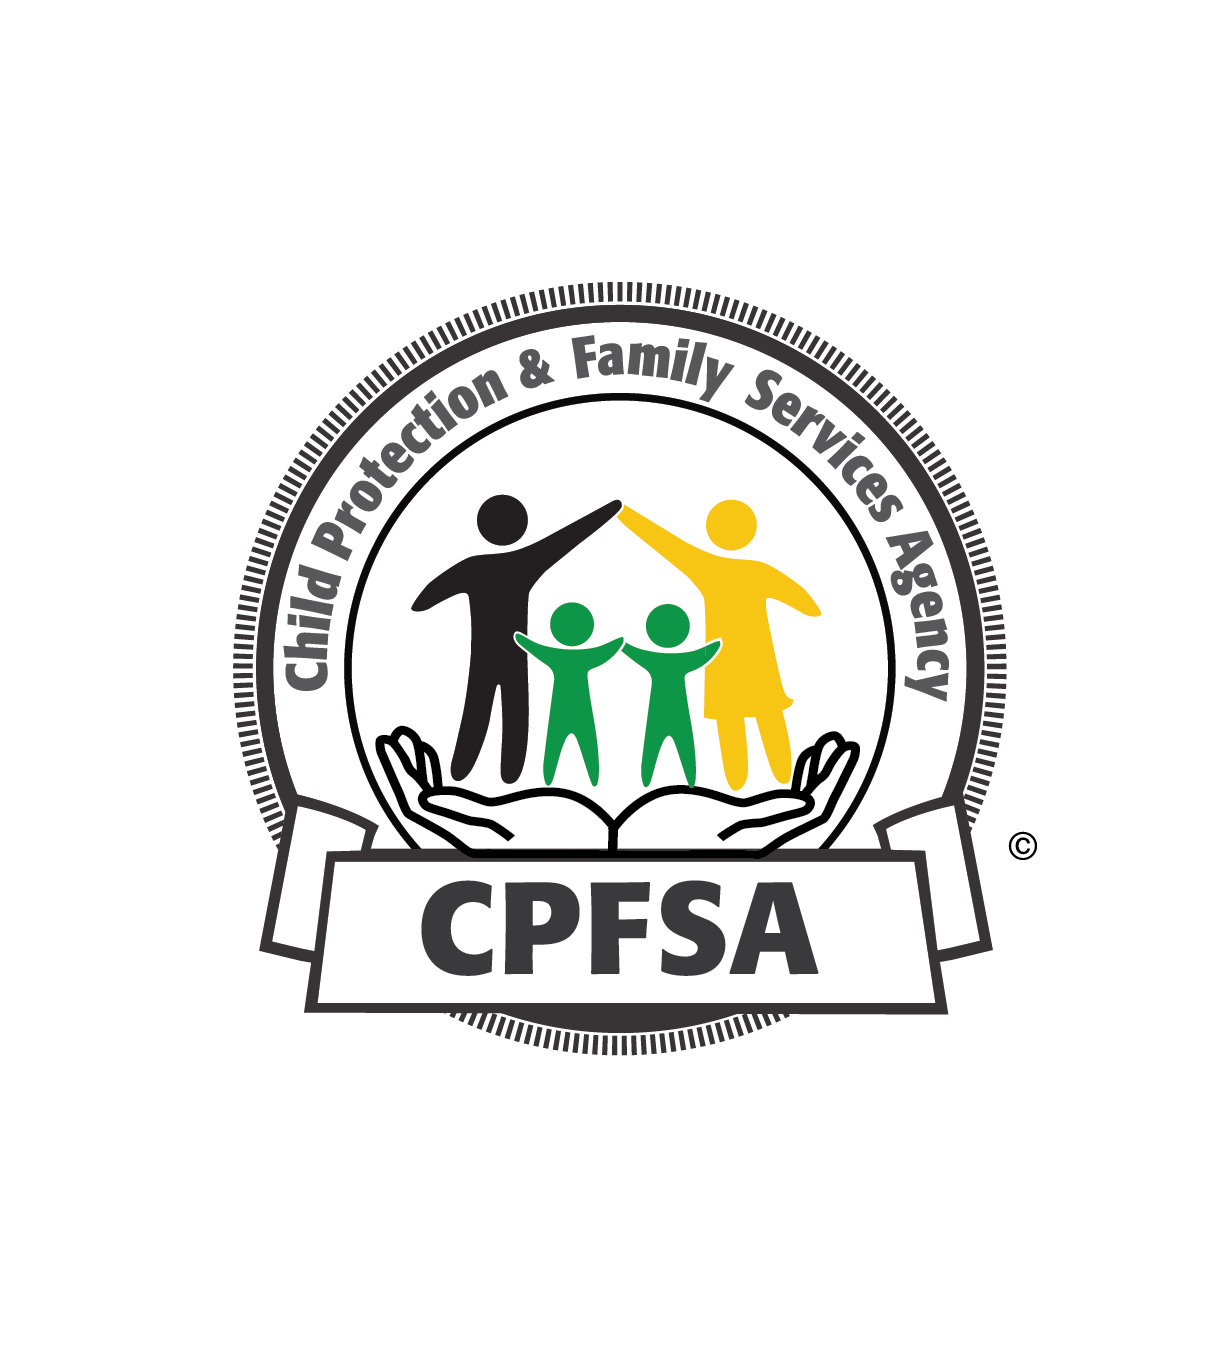 Child Protection and Family Services Agency